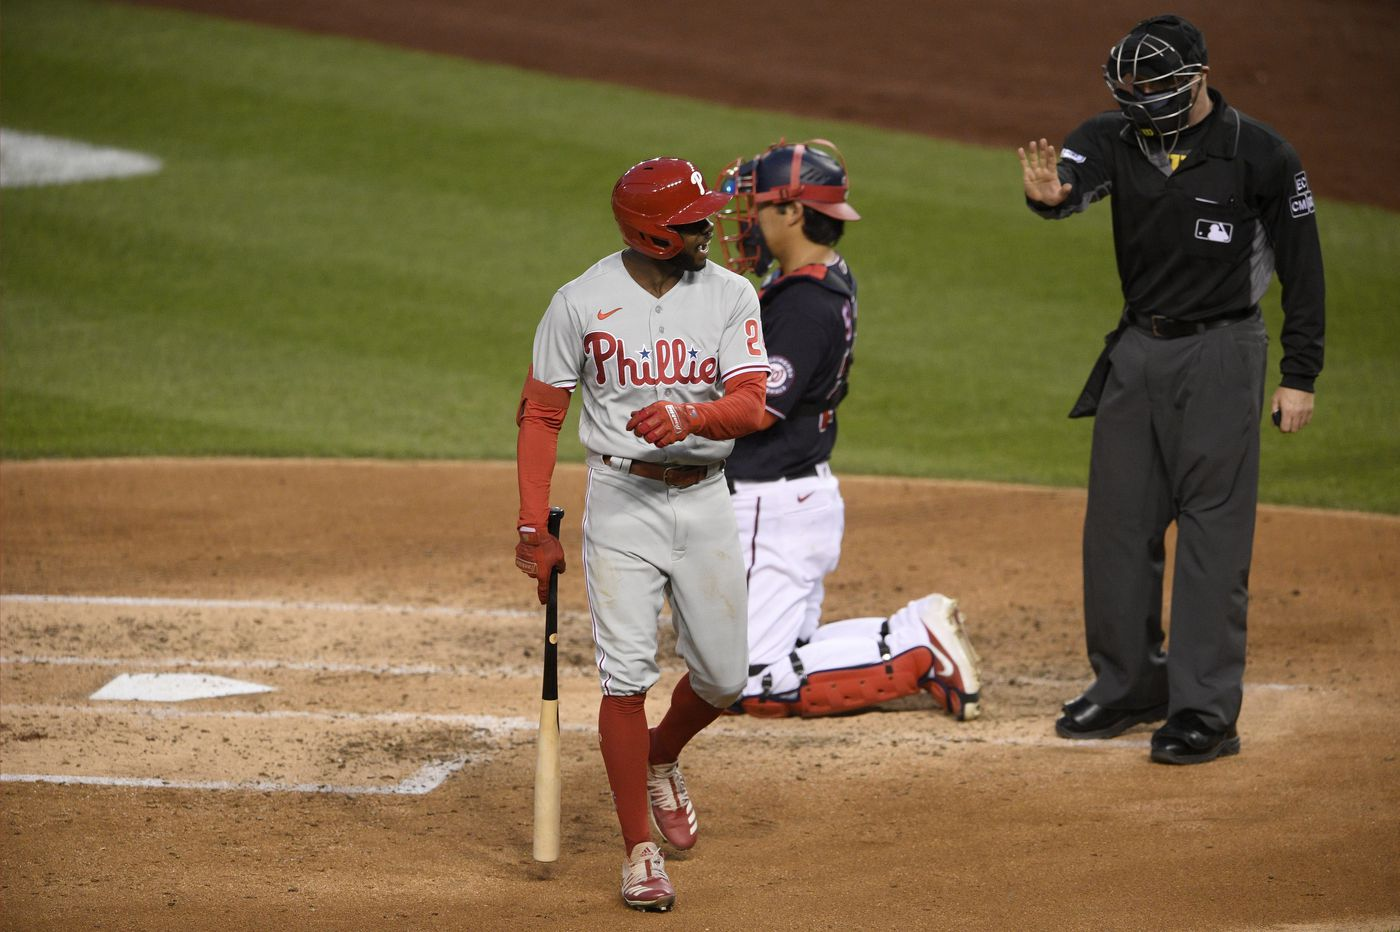 Phillies slip back to .500, and slide out of No. 7 seed in playoff picture, with 5-1 loss to Nationals